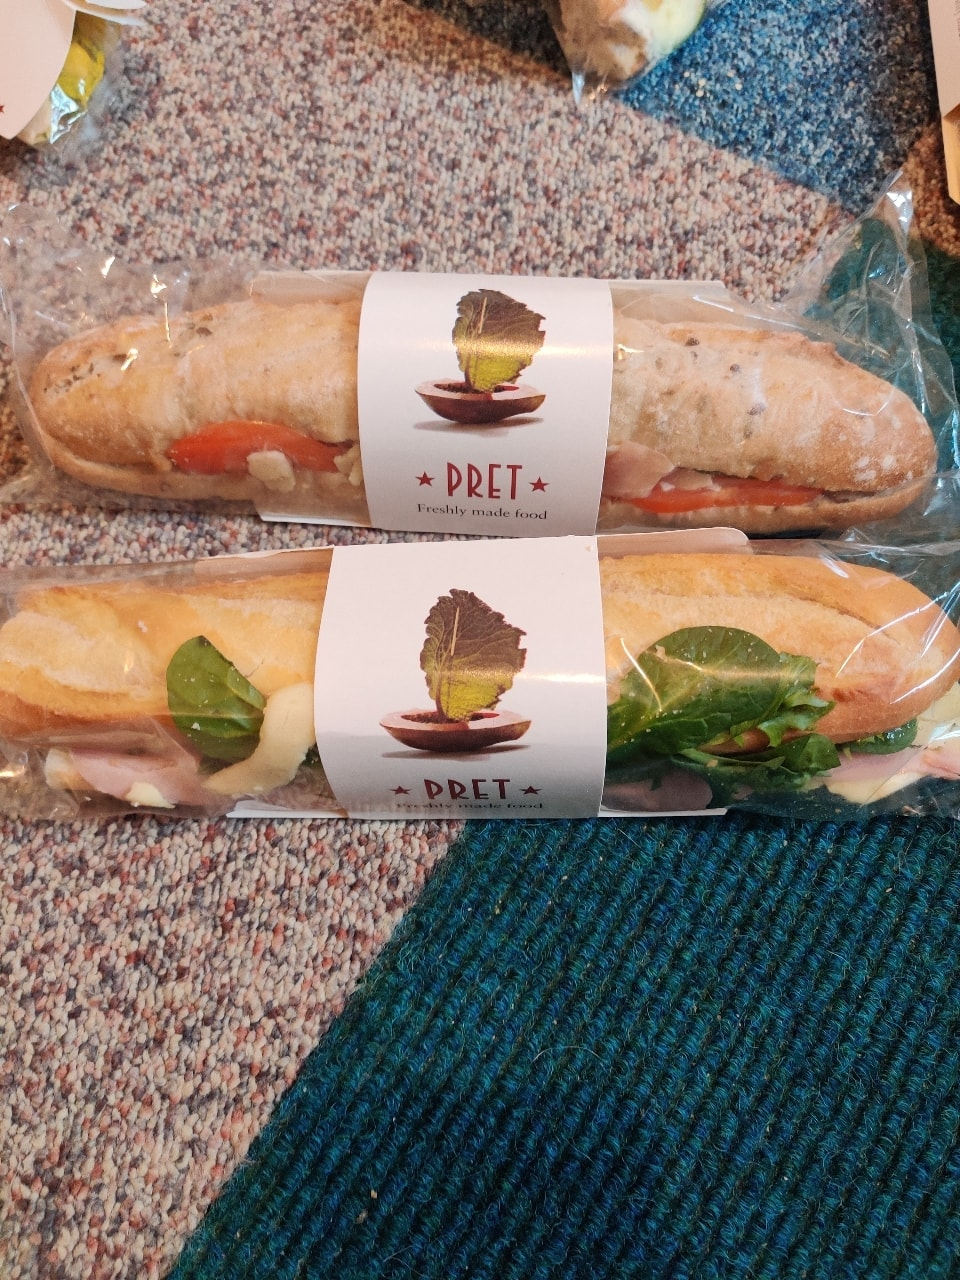 2 Pret Meat Sandwiches (SEE PICTURES)